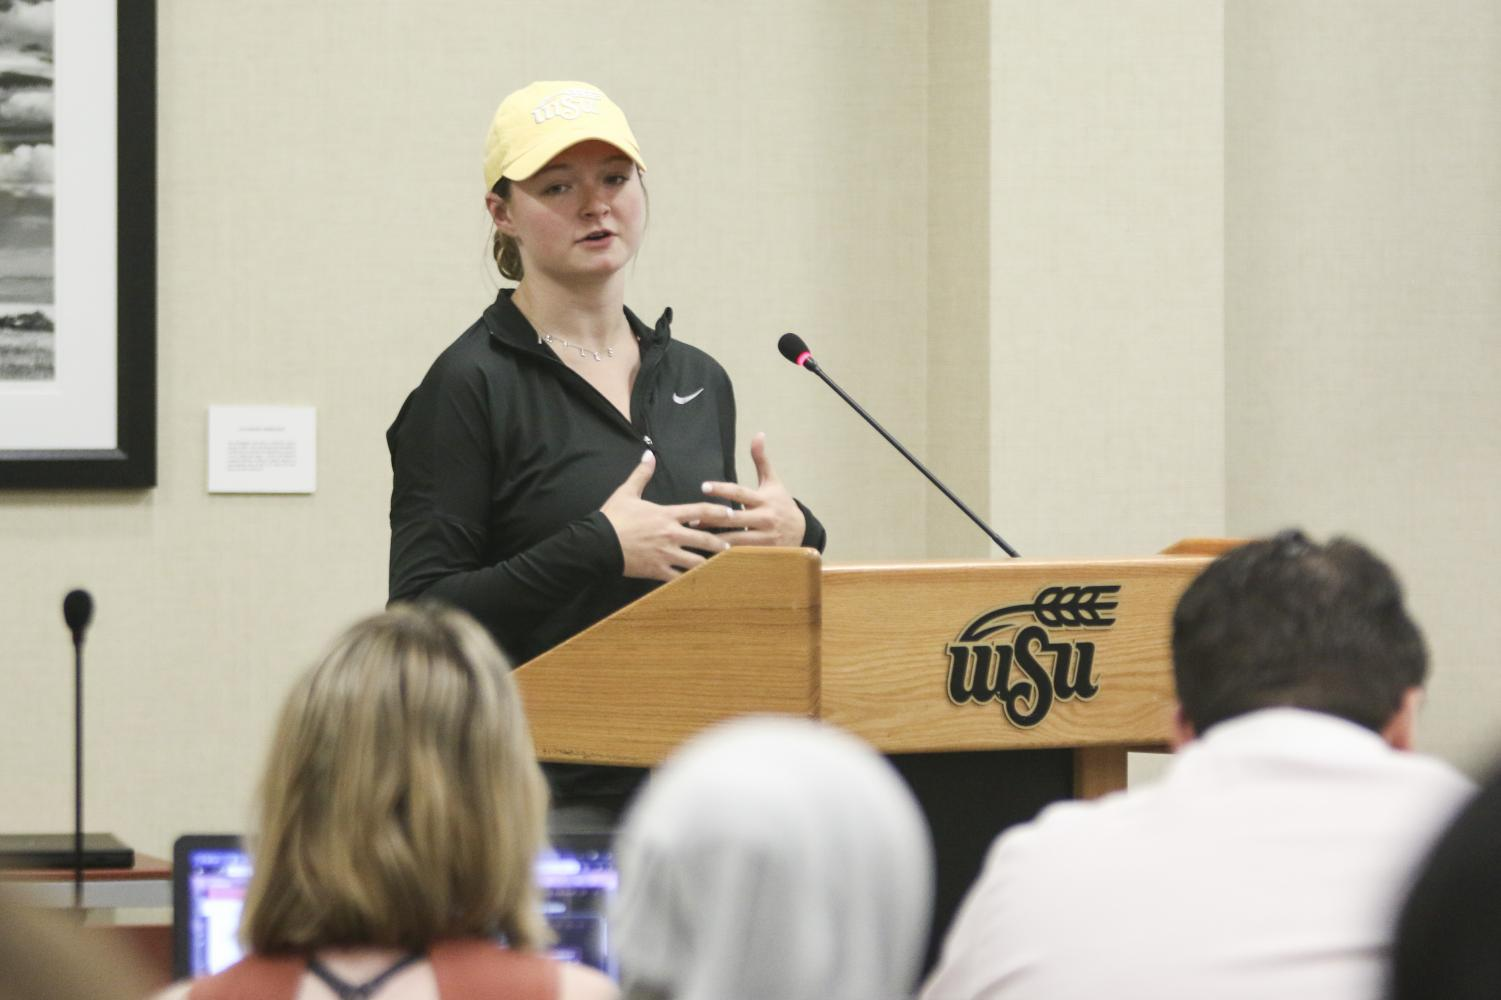 Kylee Sorrells, a marketing and game day operations assistant, speaks about changing the branding for the student section this year during public forum at SGA on Wednesday, Oct. 2, 2019.